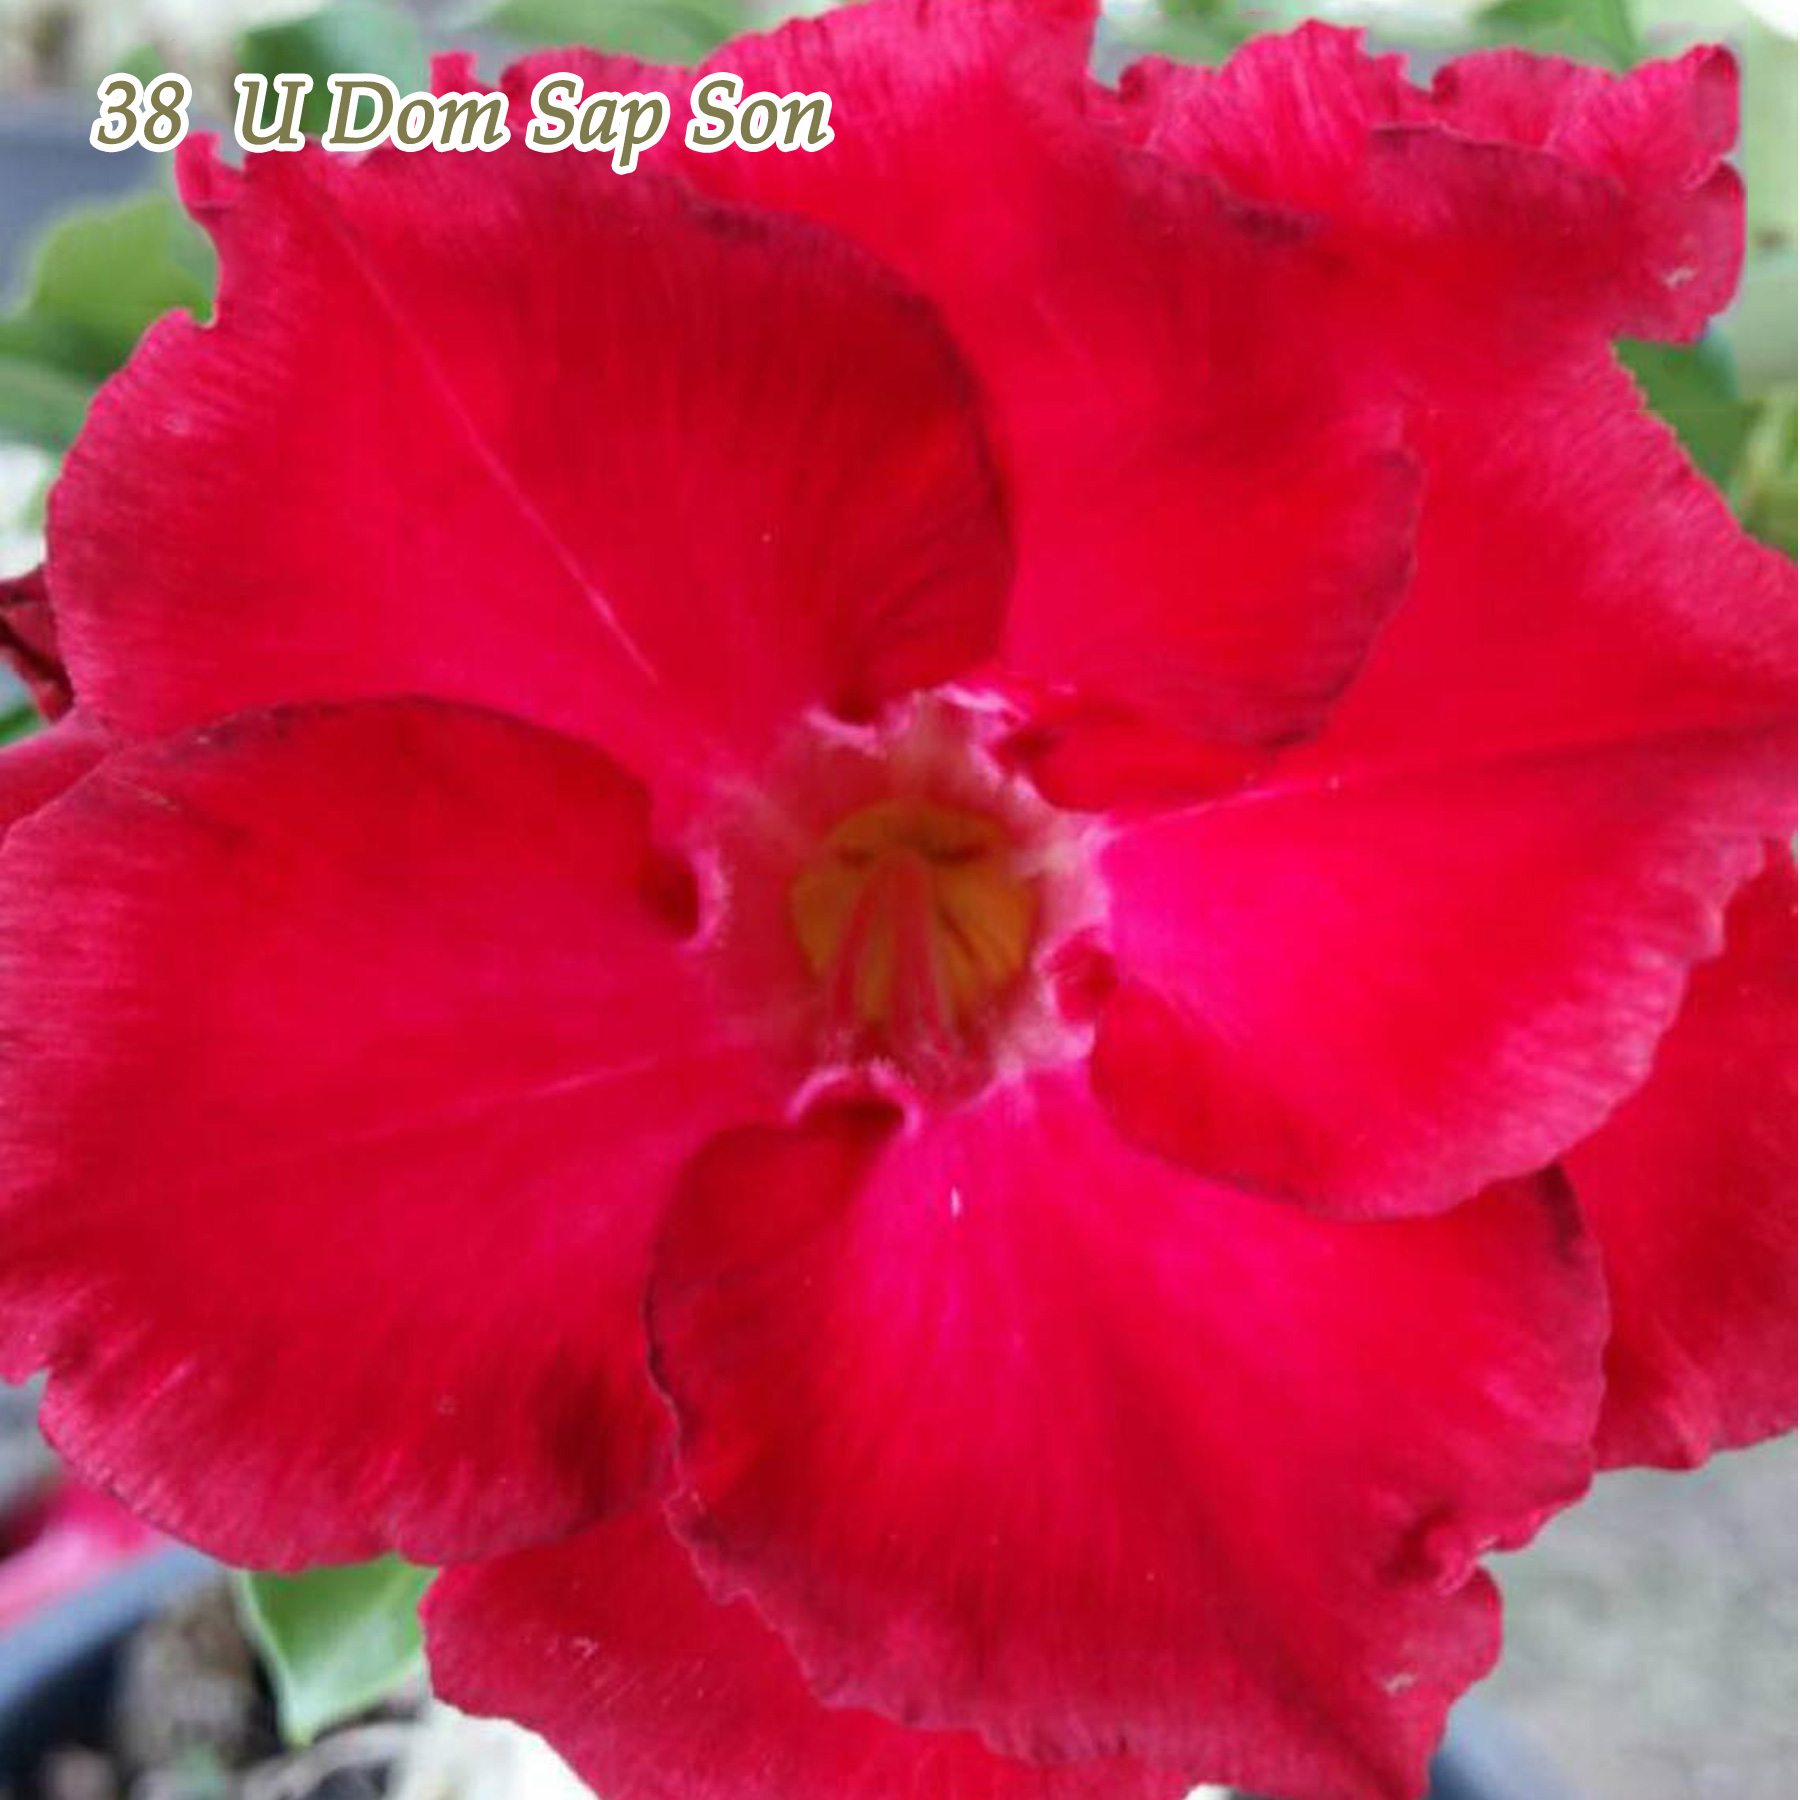 Desert Rose Plant Adenium obesum Mature Bonsai New Hybrids Easy Care by Bonsai Trees